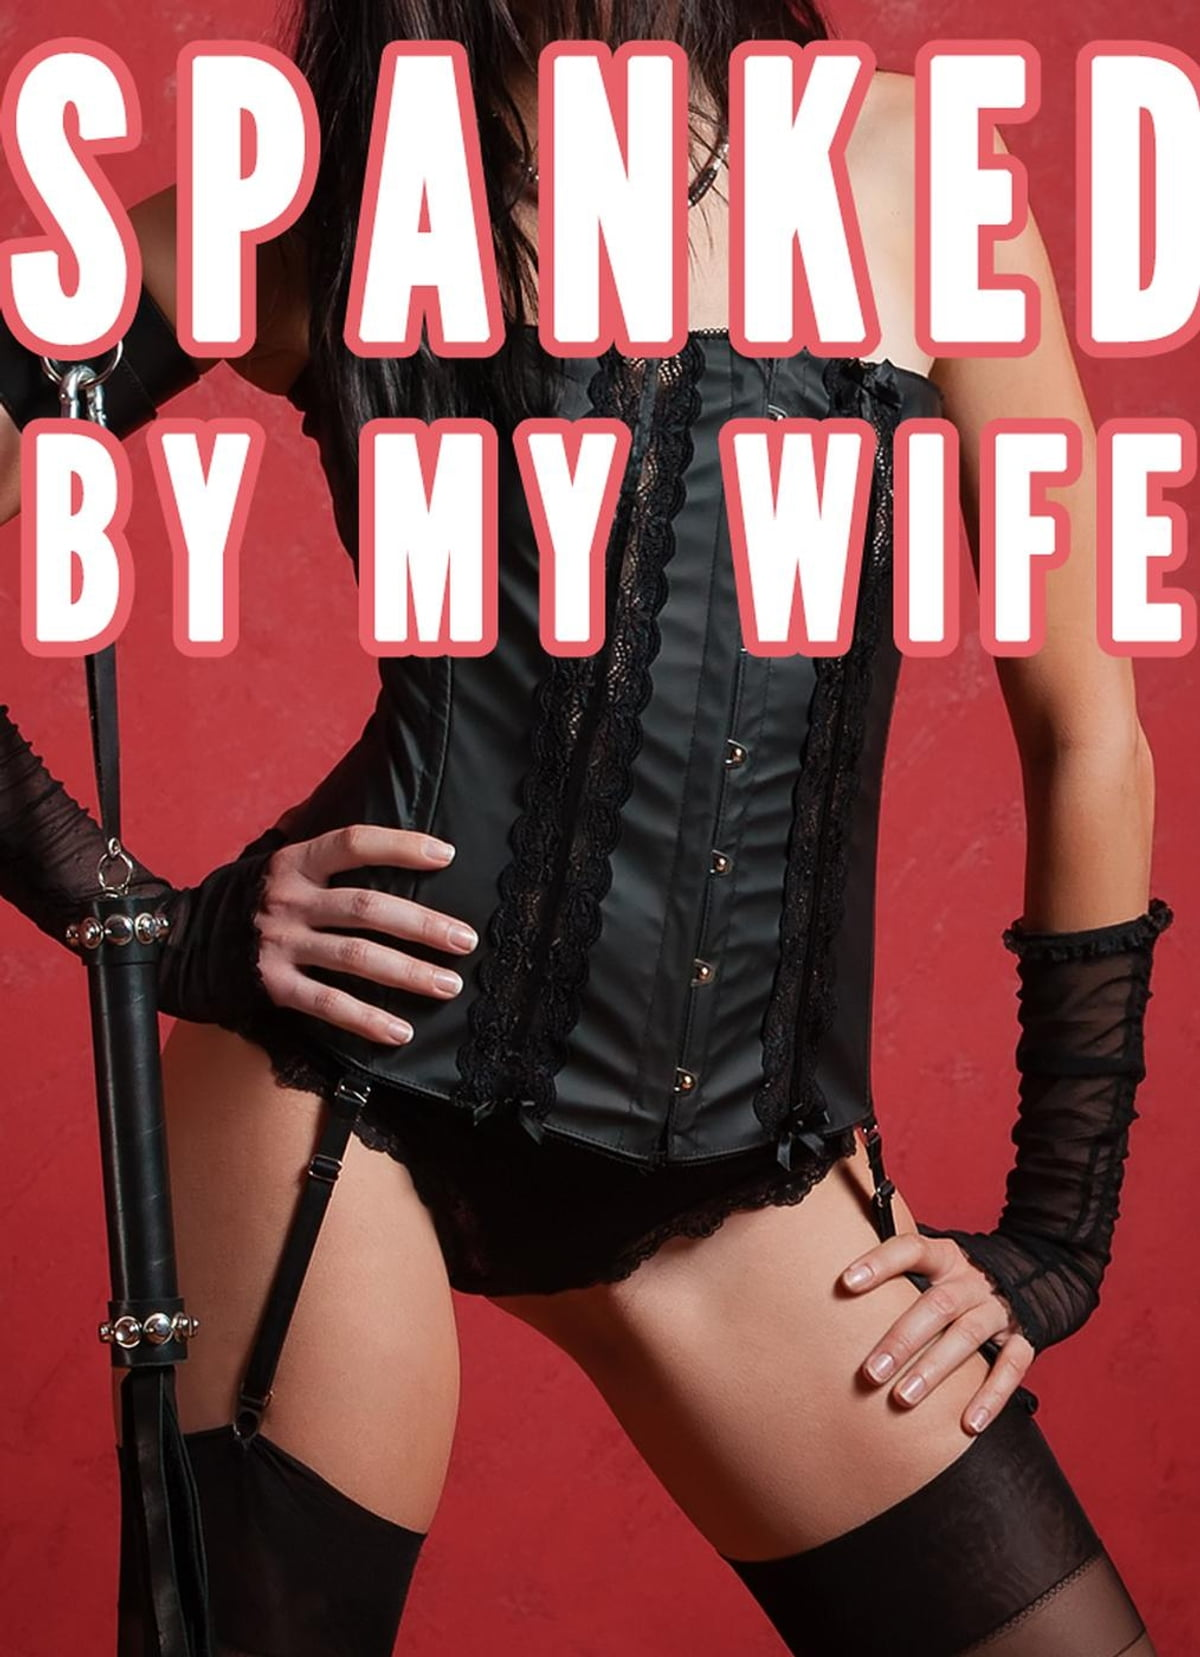 Spanked by Wife (Femdom Spanking, Female Led Relationships, Femdom  Marriage) eBook by Chrissy Wild - 9781386990420 | Rakuten Kobo